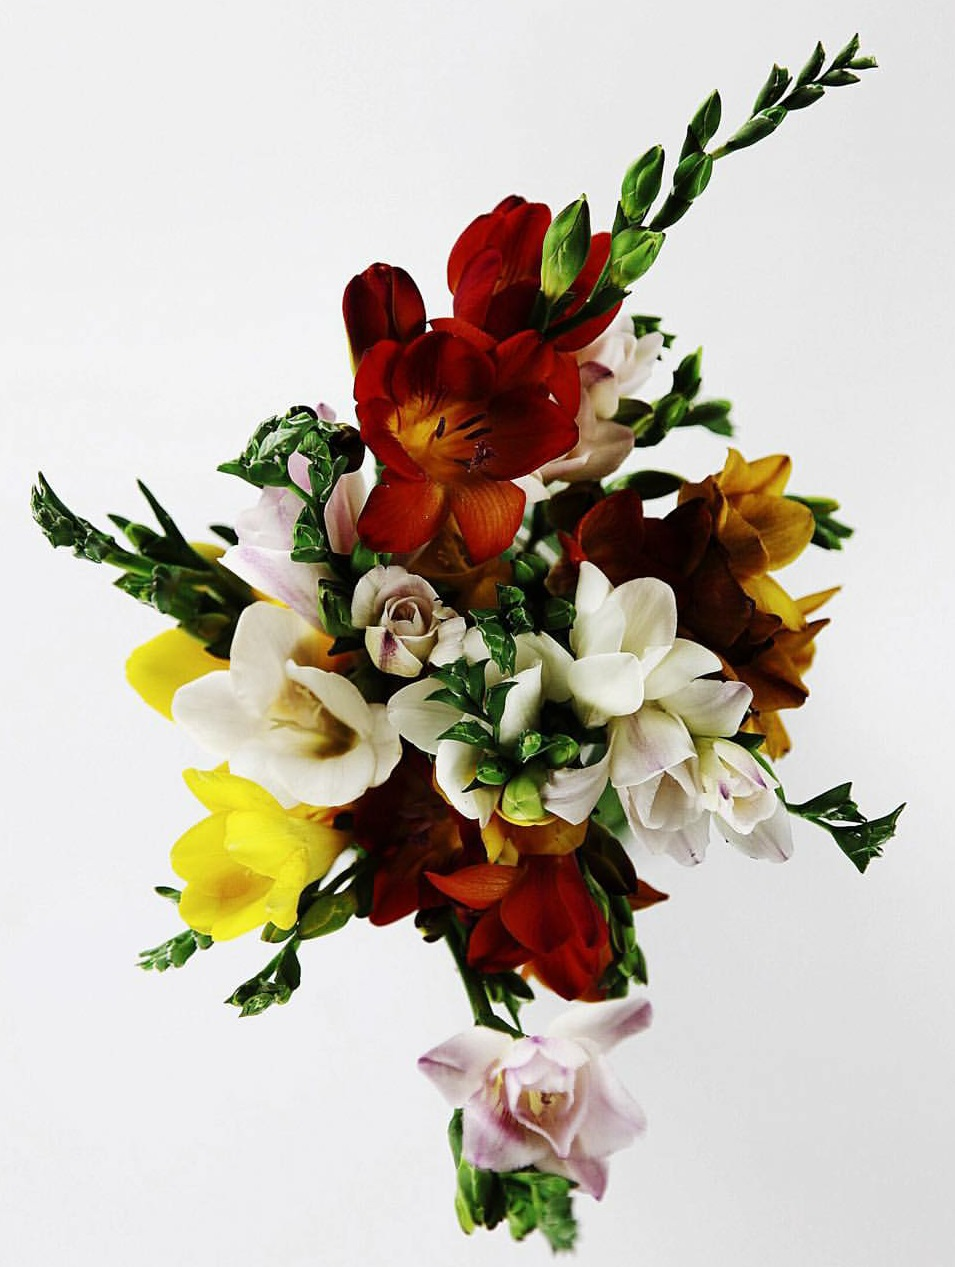 The bouqs flower arrangements.jpg